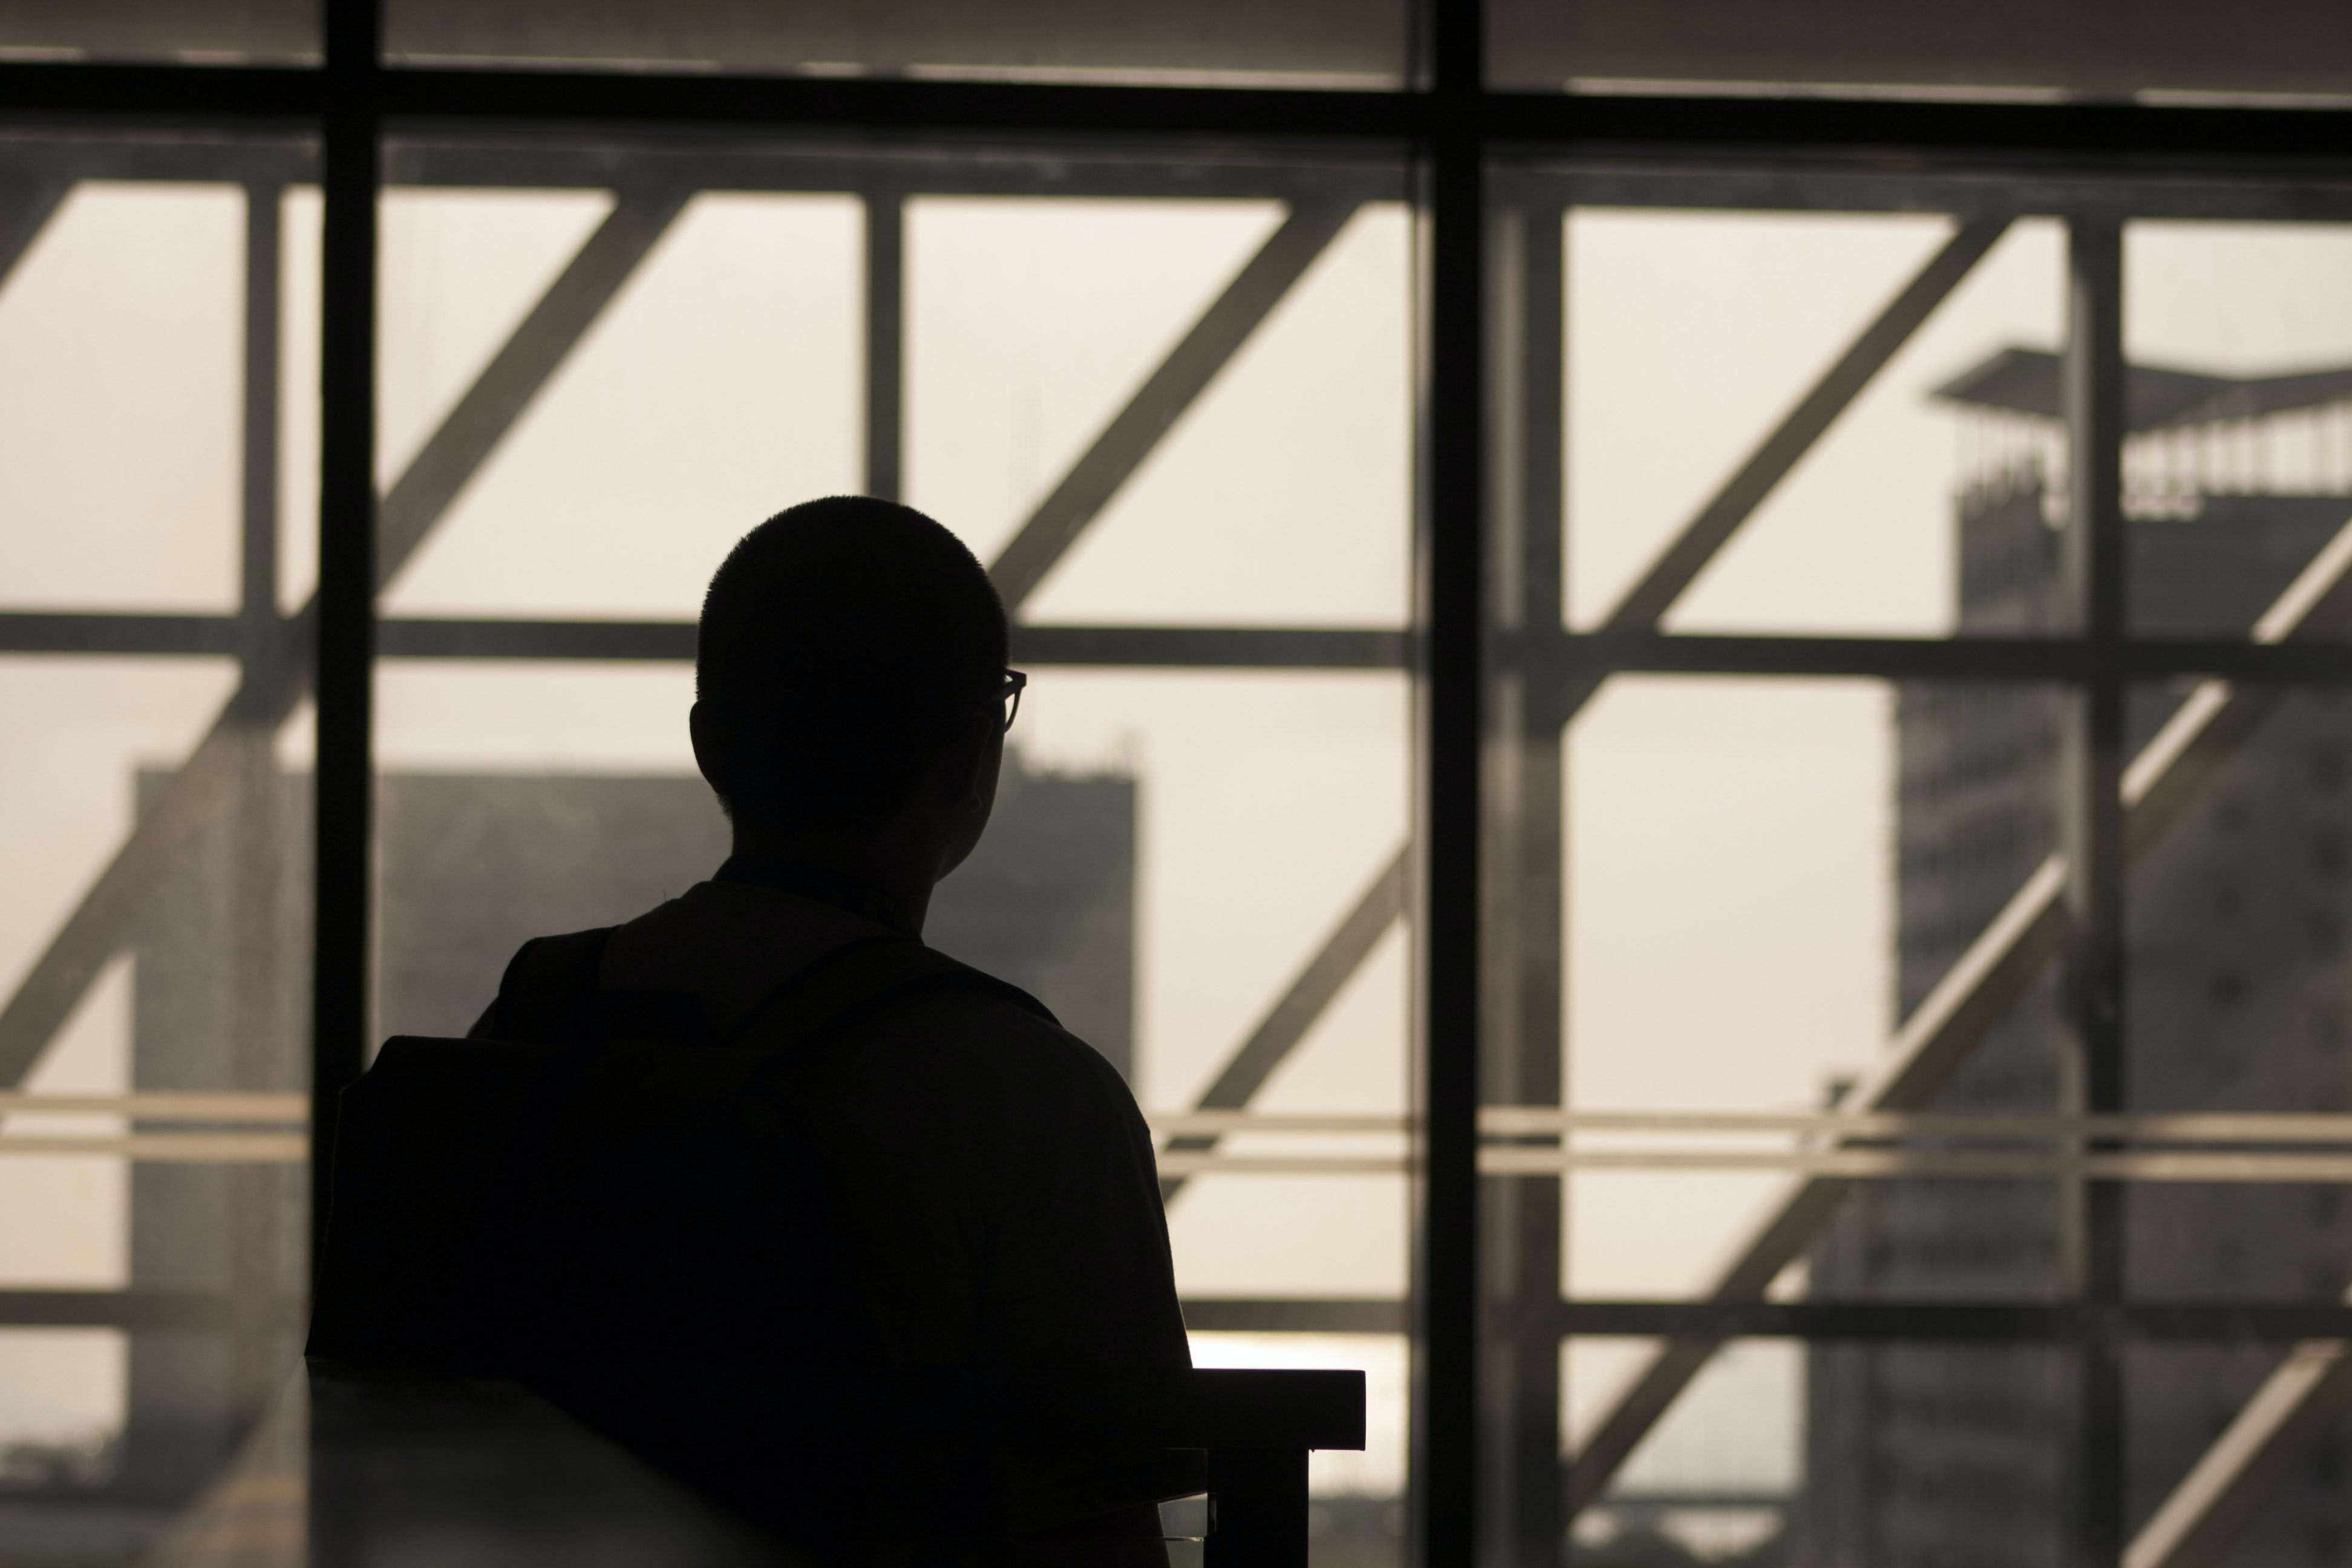 silhouette photo of man wearing eyeglasses sitting on chair